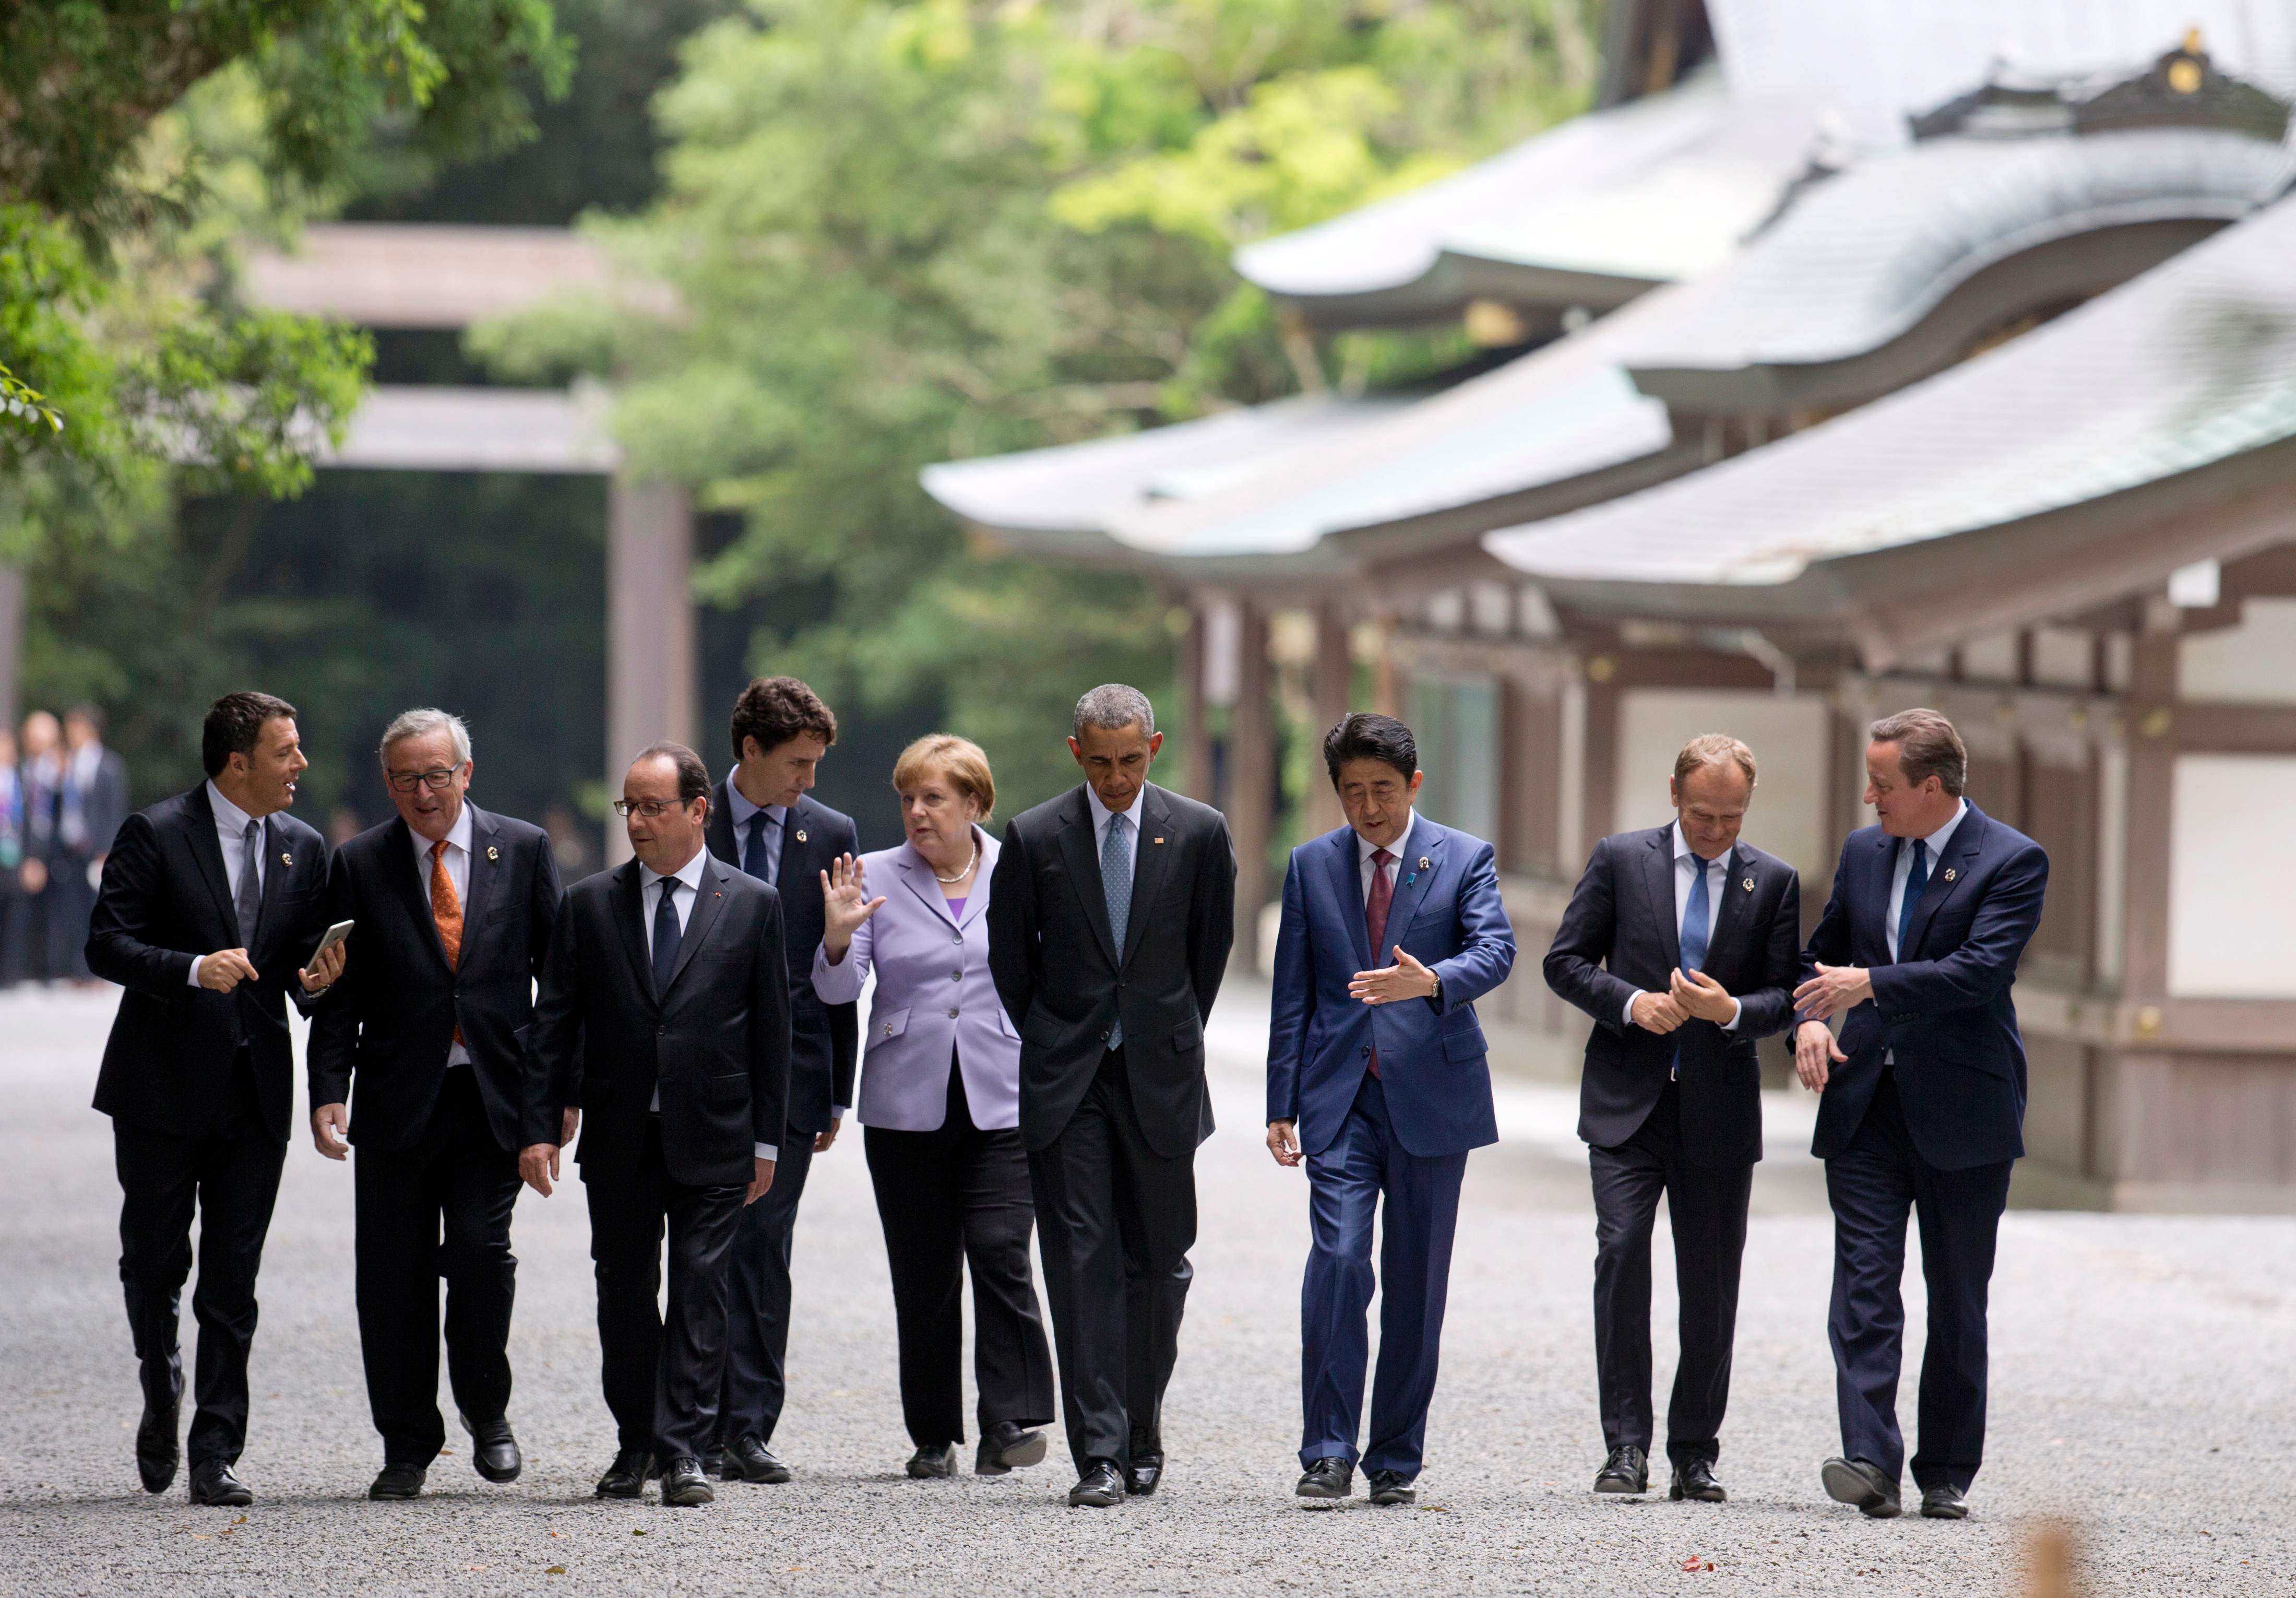 Japan's Abe takes G7 leaders to shrine as economy tops summit agenda